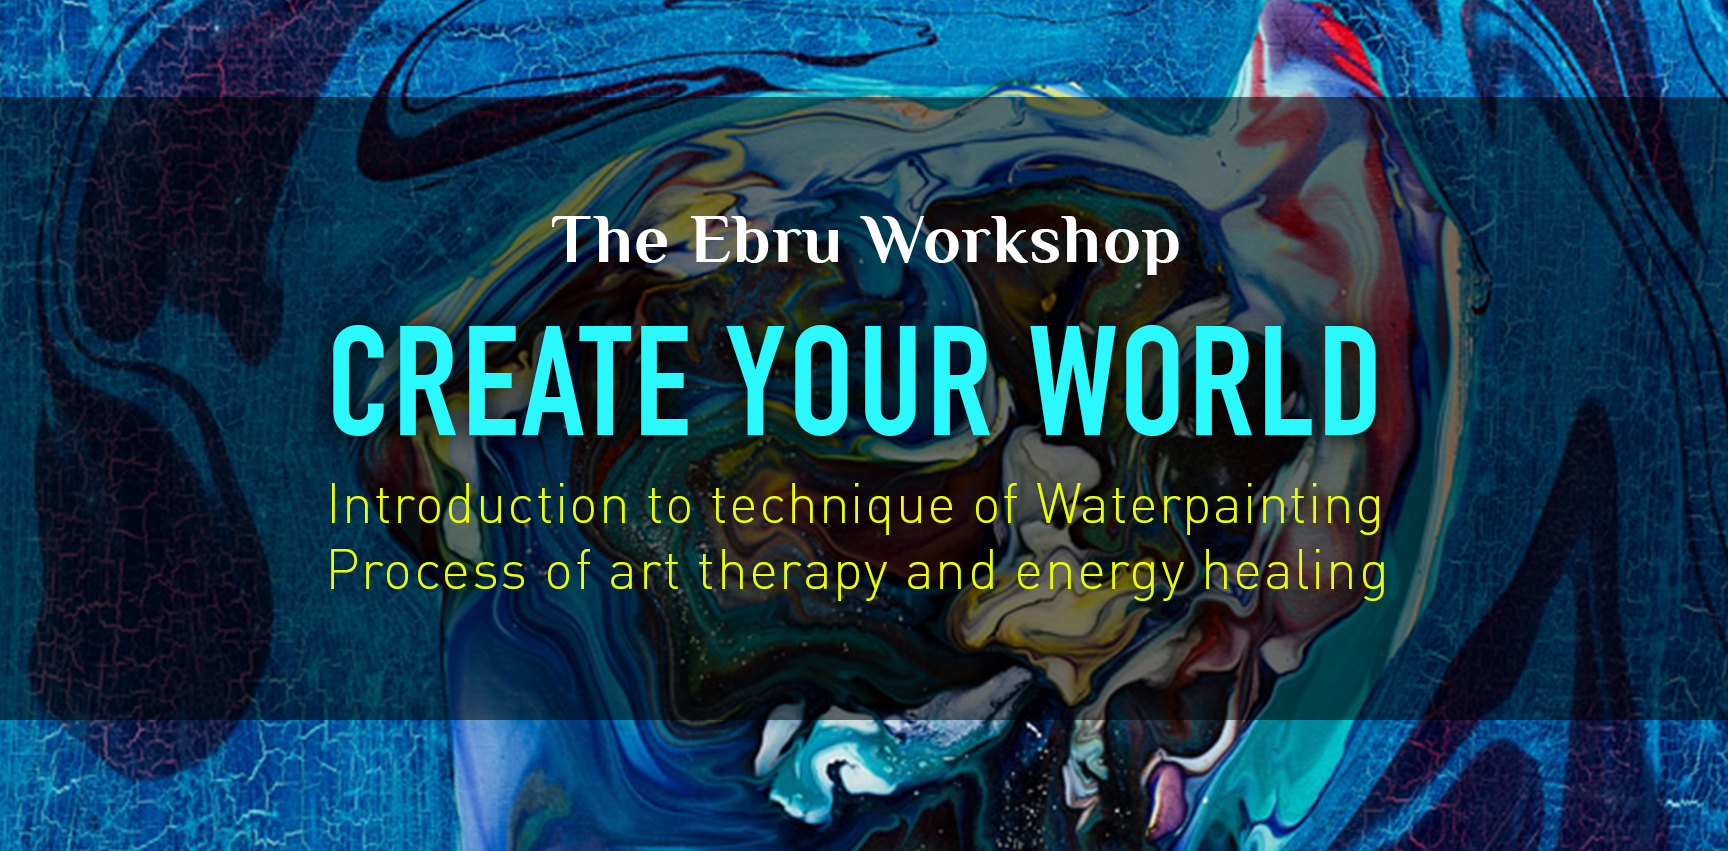 workshop-ebru-kate-goltseva.jpg